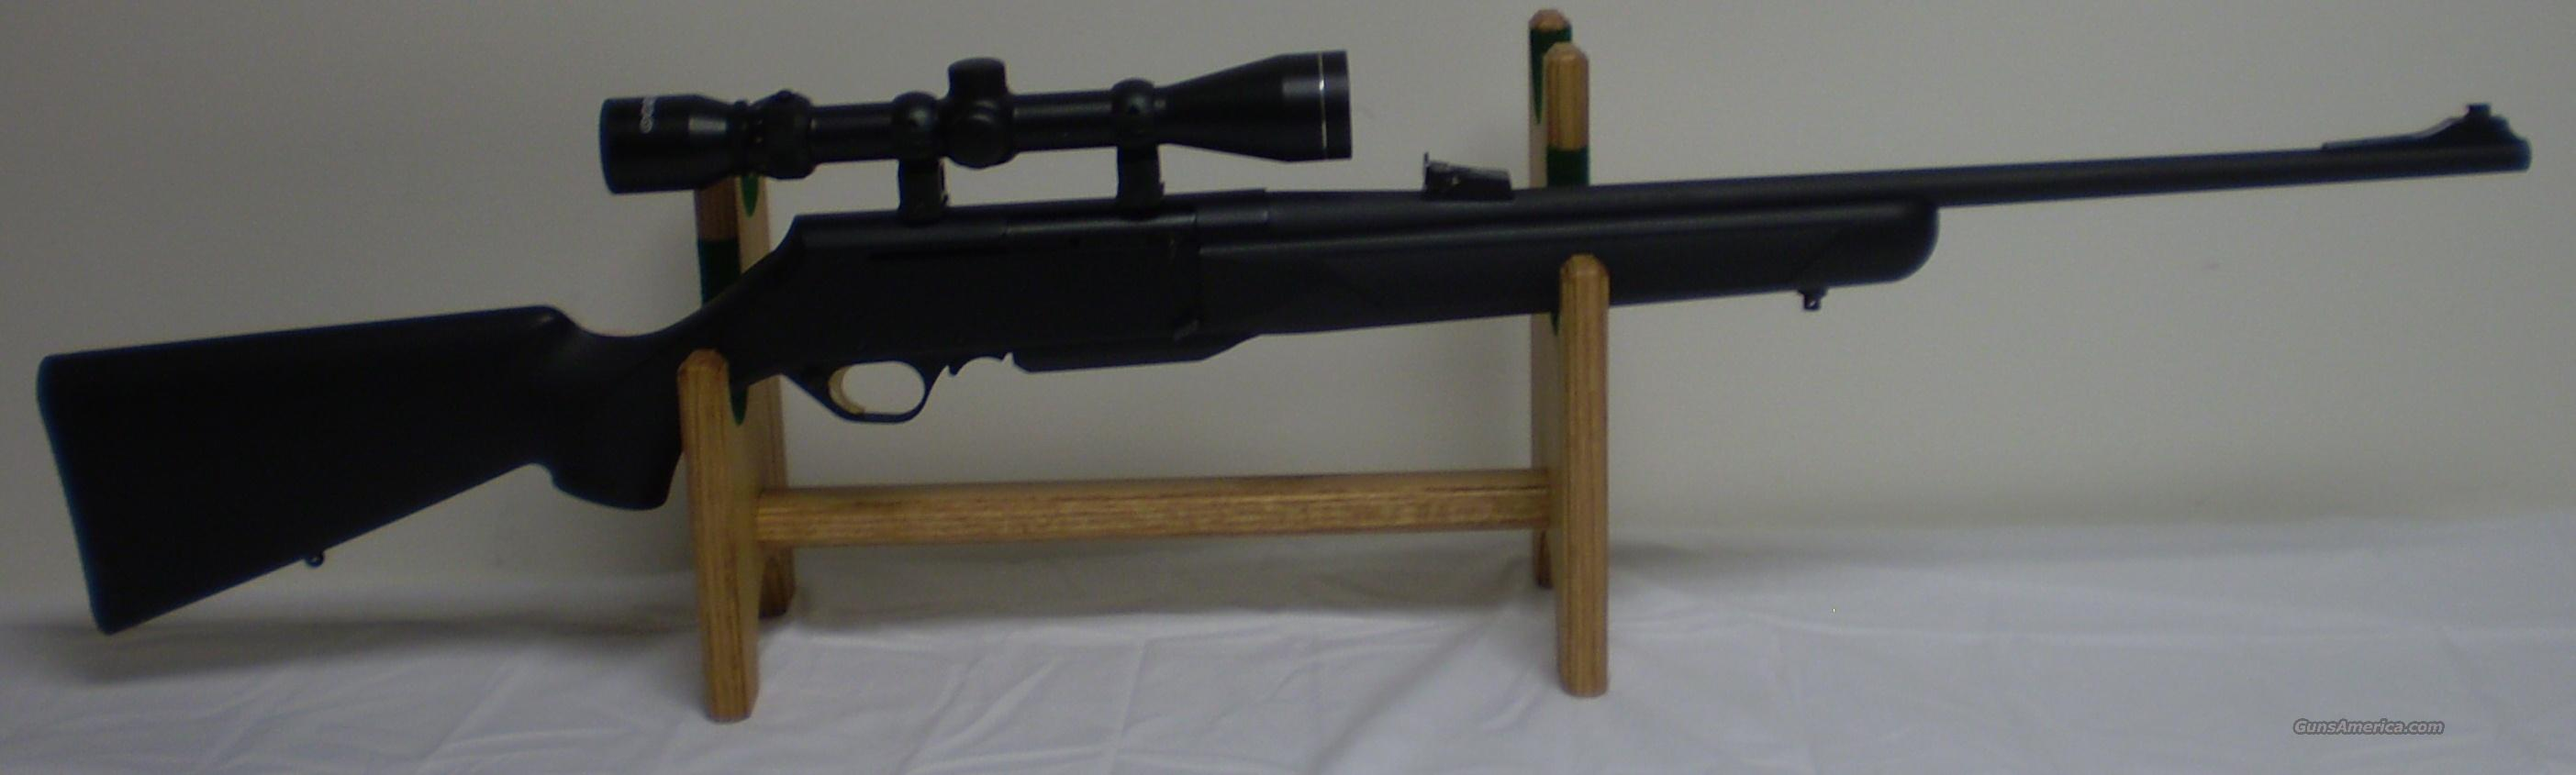 Browning BAR Lightweight Stalker LongTrac  30-06 Excellent  Guns > Rifles > Browning Rifles > Semi Auto > Hunting